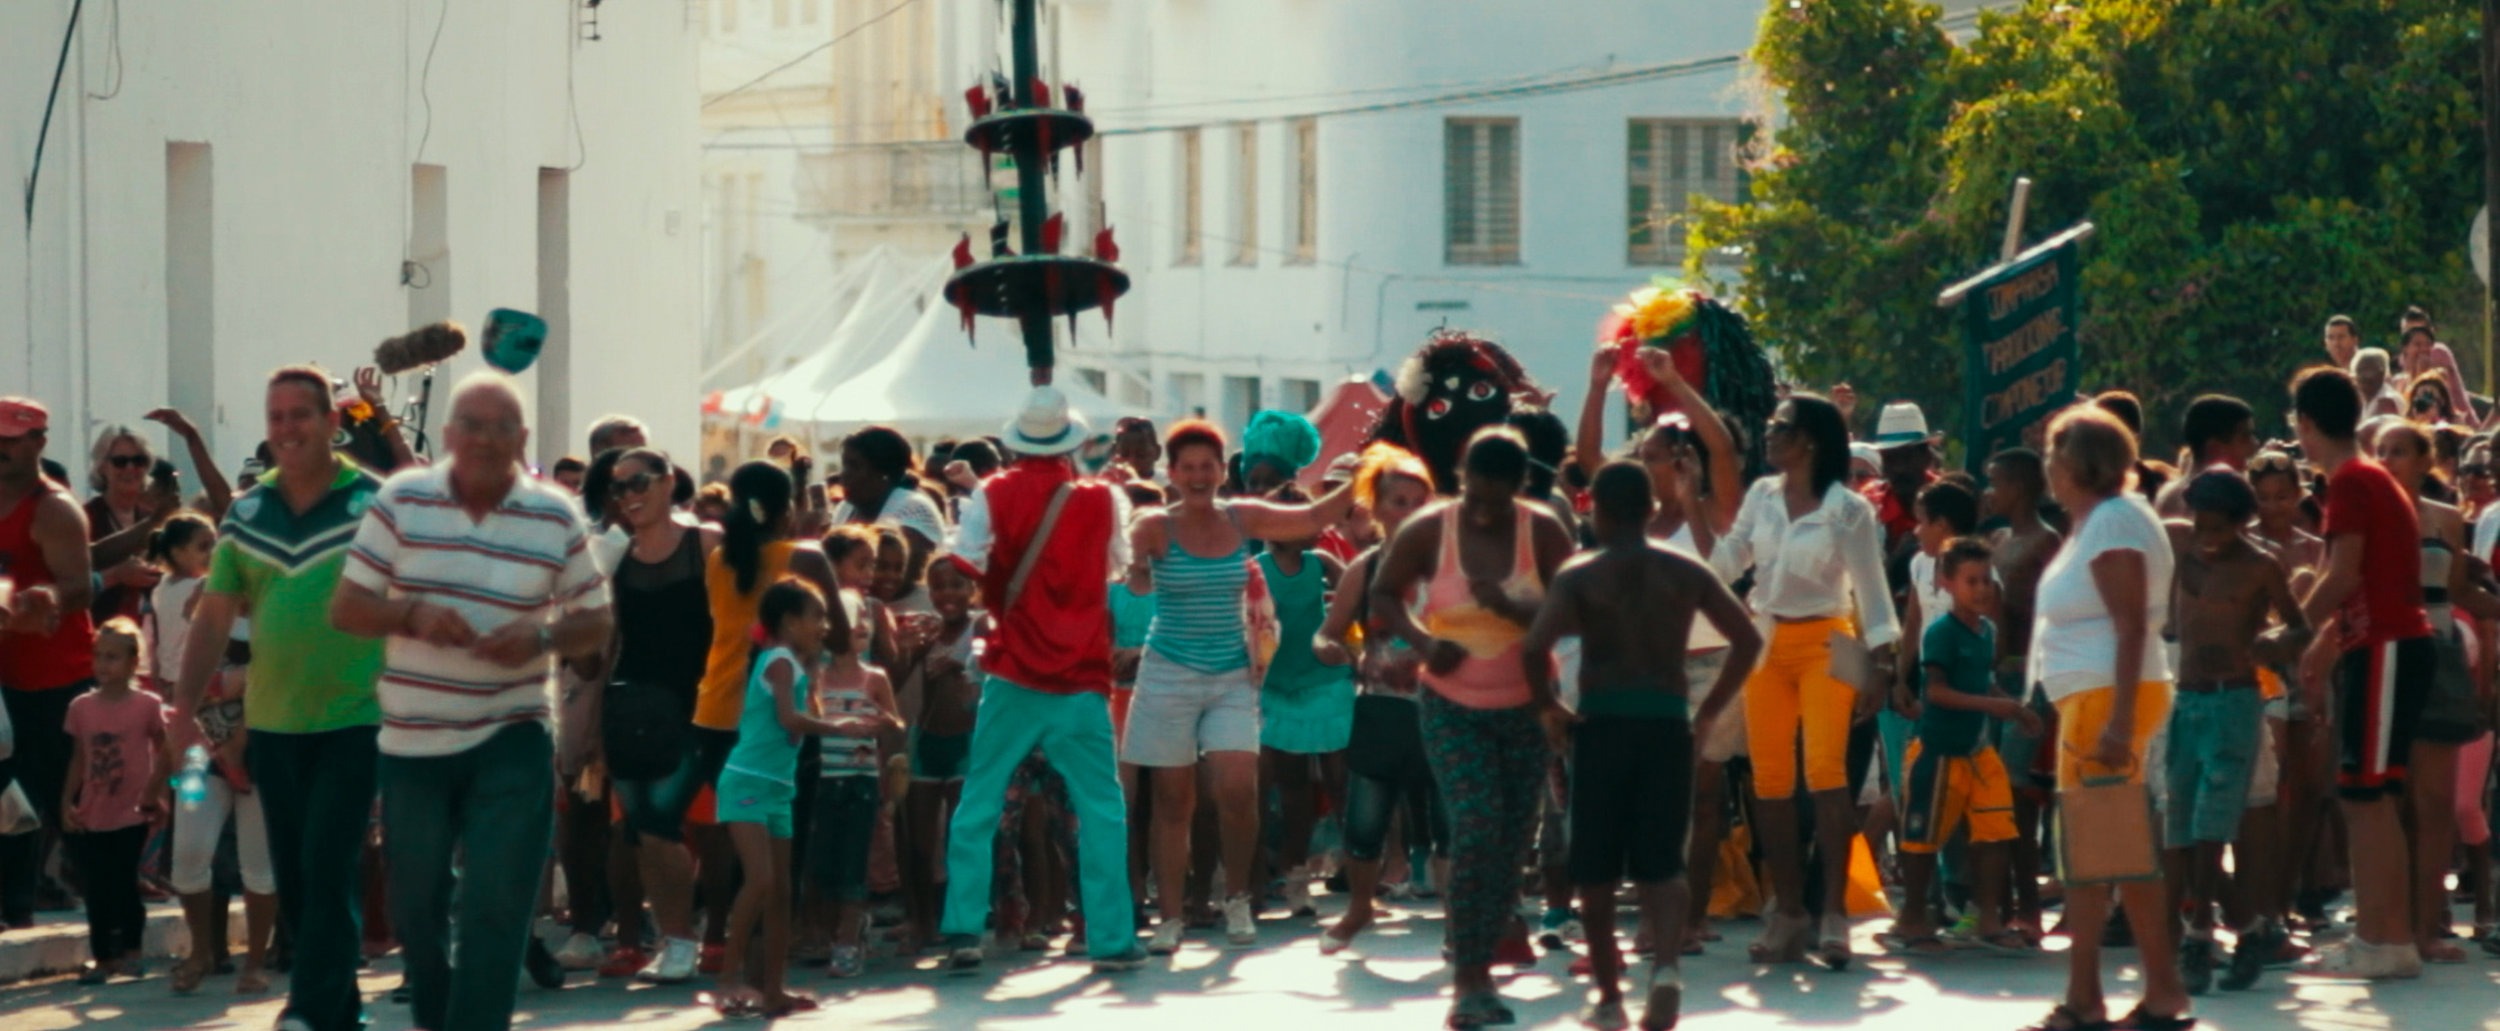 A conga inaugurates the 12th Havana Biennial!